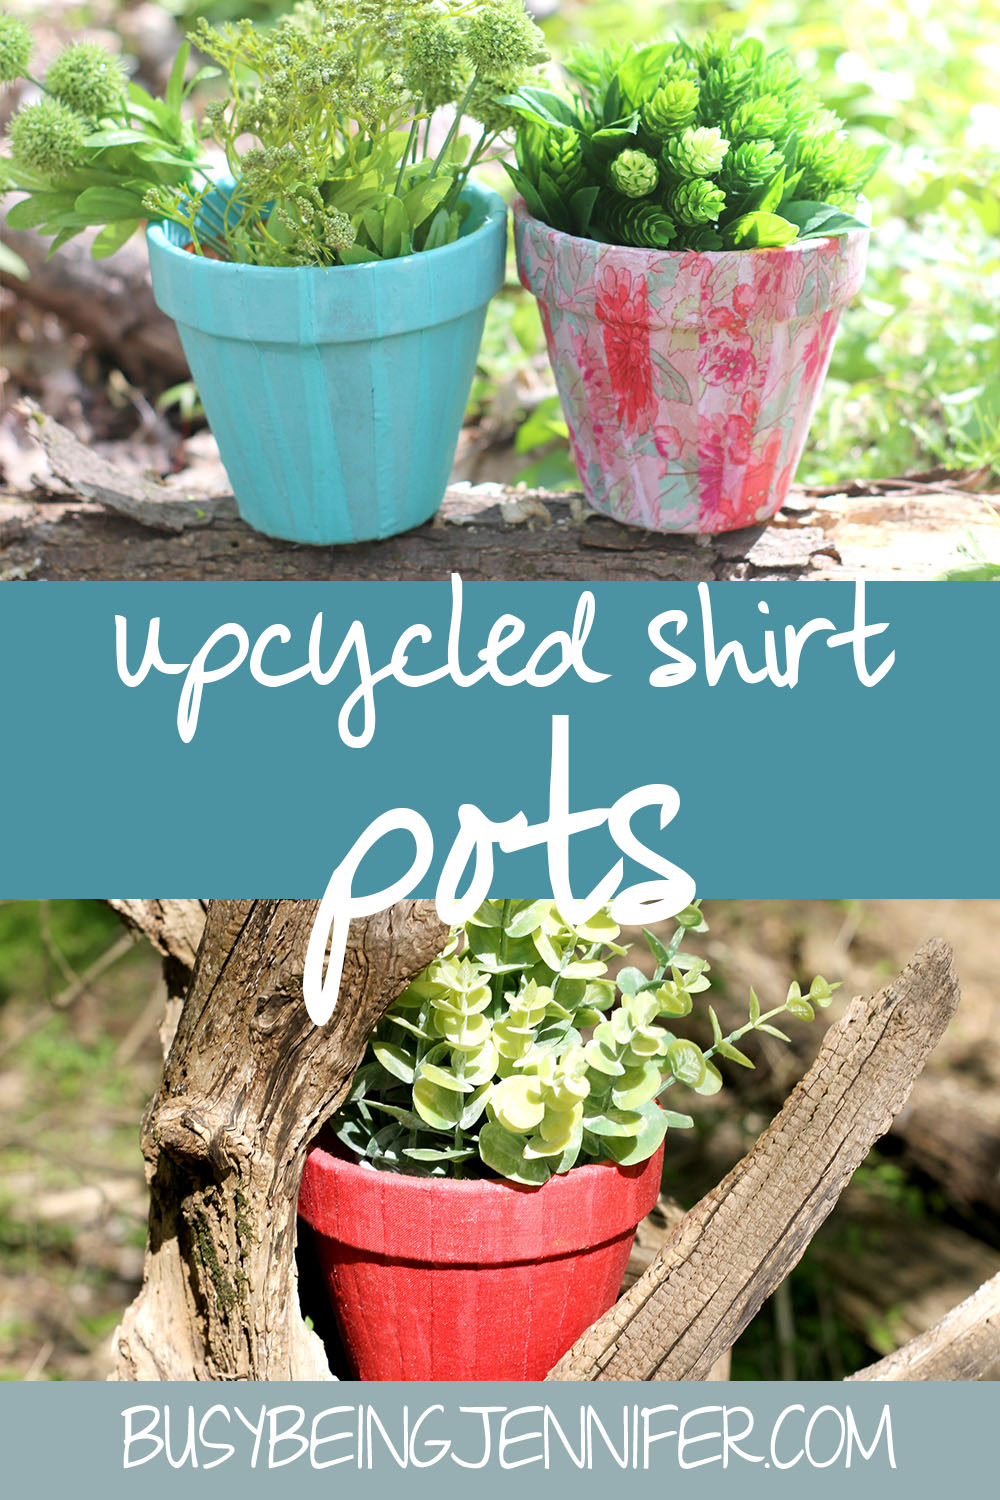 I wanted to update my porch with some plants, but didn't want boring old terra cotta pots. So I made some fun Upcycled Shirt Flower Pots.